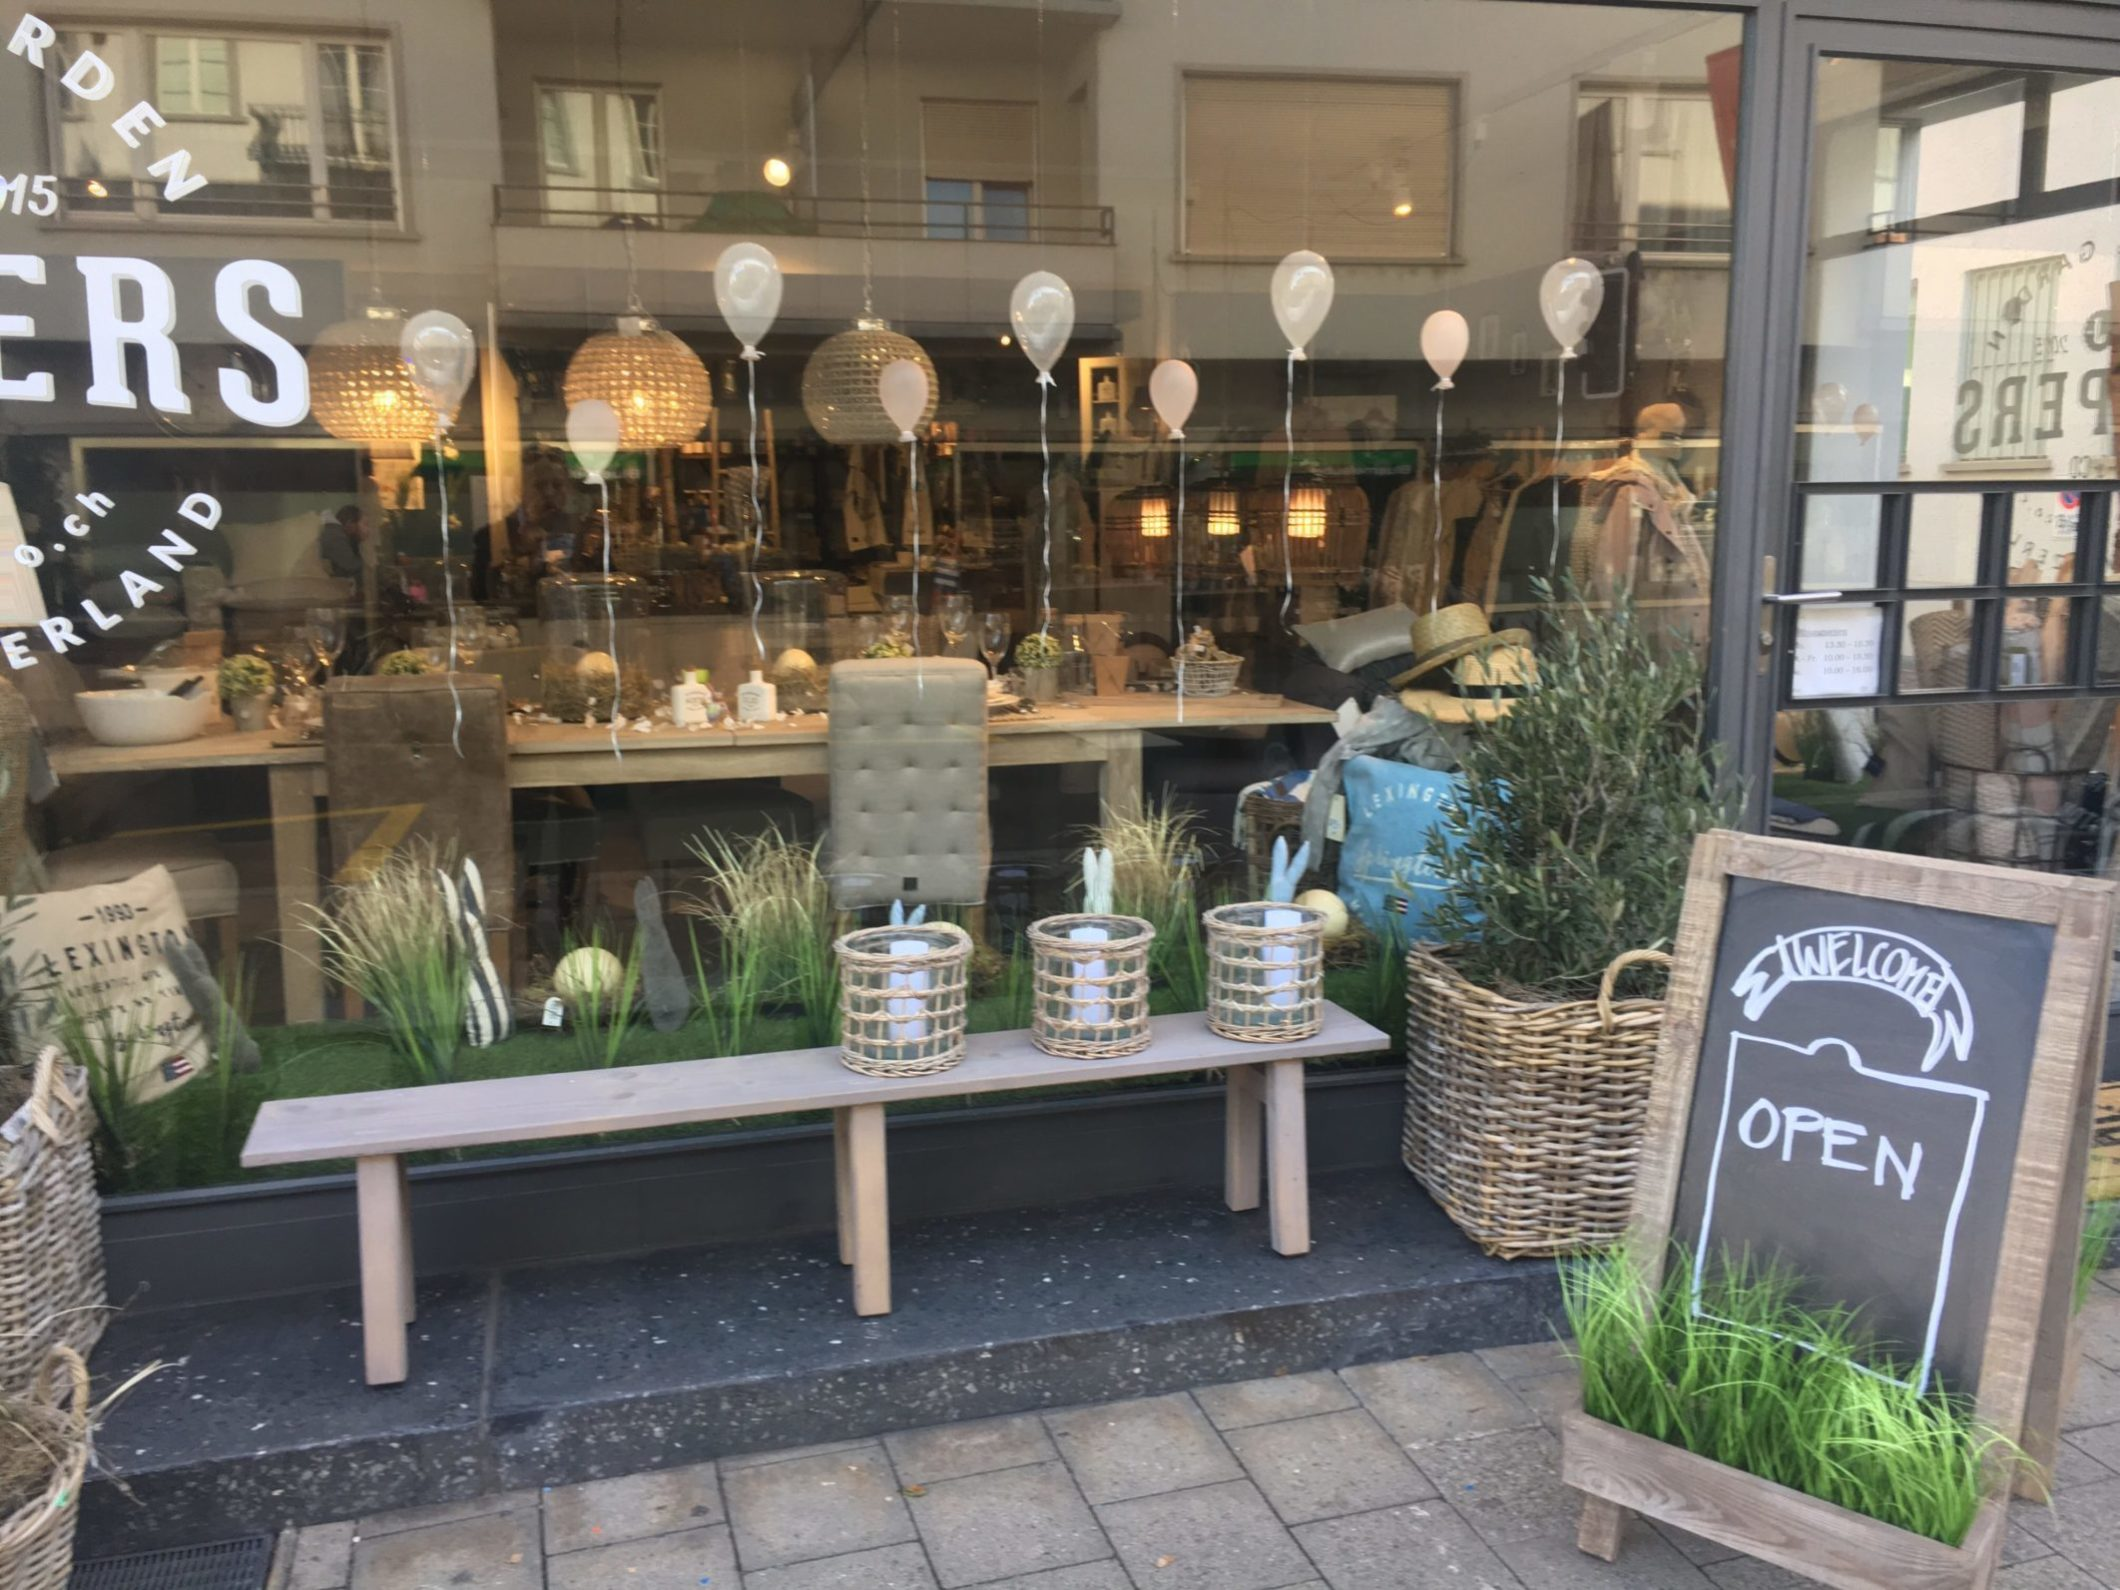 Jaspers Co Home Garden In Baarzug Exklusive Brands Und Labels